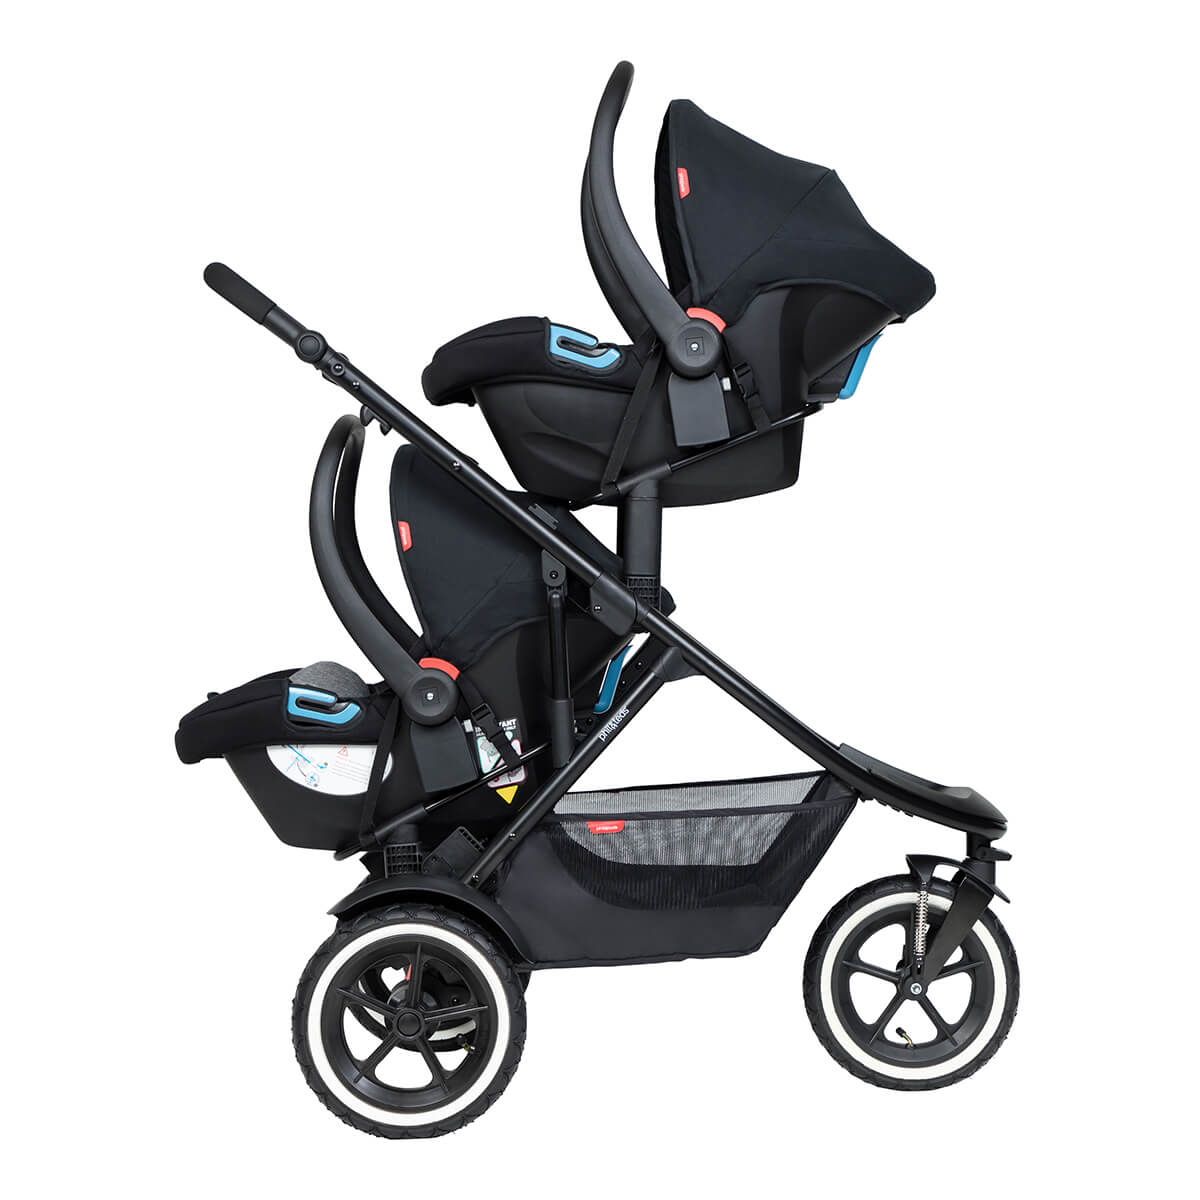 https://cdn.accentuate.io/4509528227928/19272668414040/philteds-sport-buggy-with-double-alpha-travel-system-v1626484452583.jpg?1200x1200